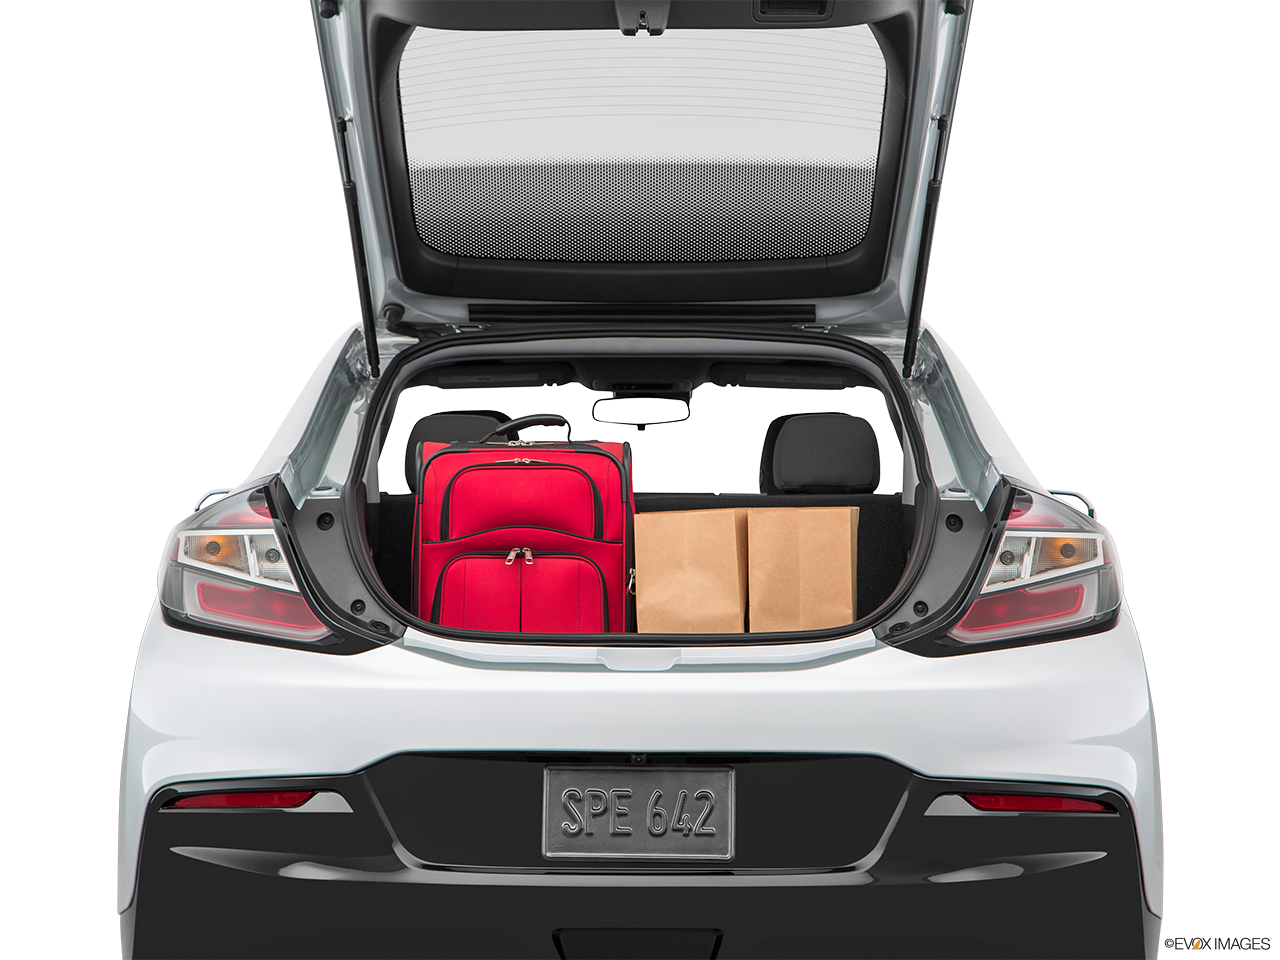 Trunk view of the Chevrolet Volt